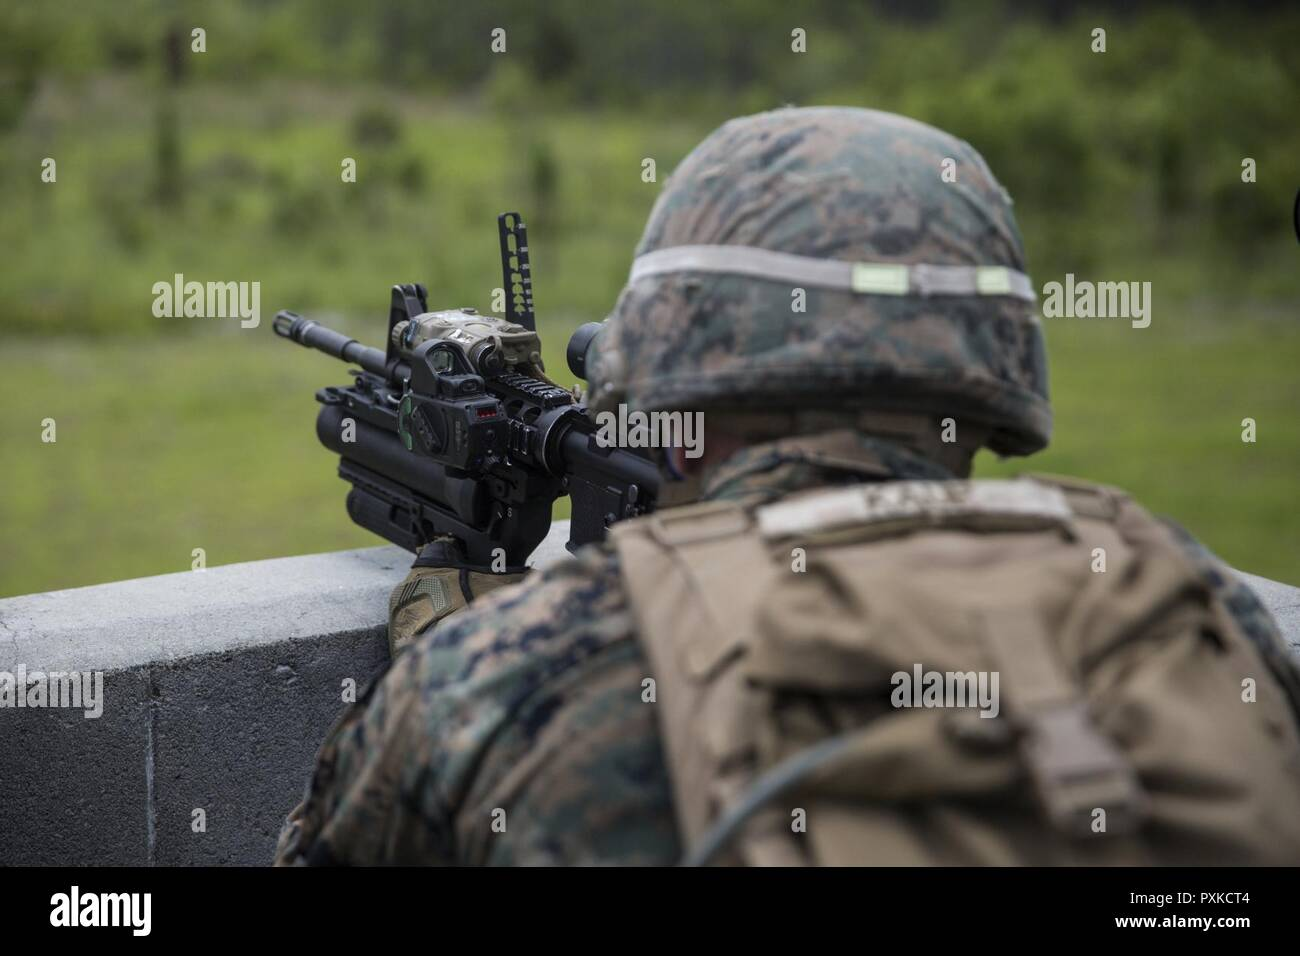 A Marine Observes Target Through Sight On An M320 Grenade Launcher Mounted